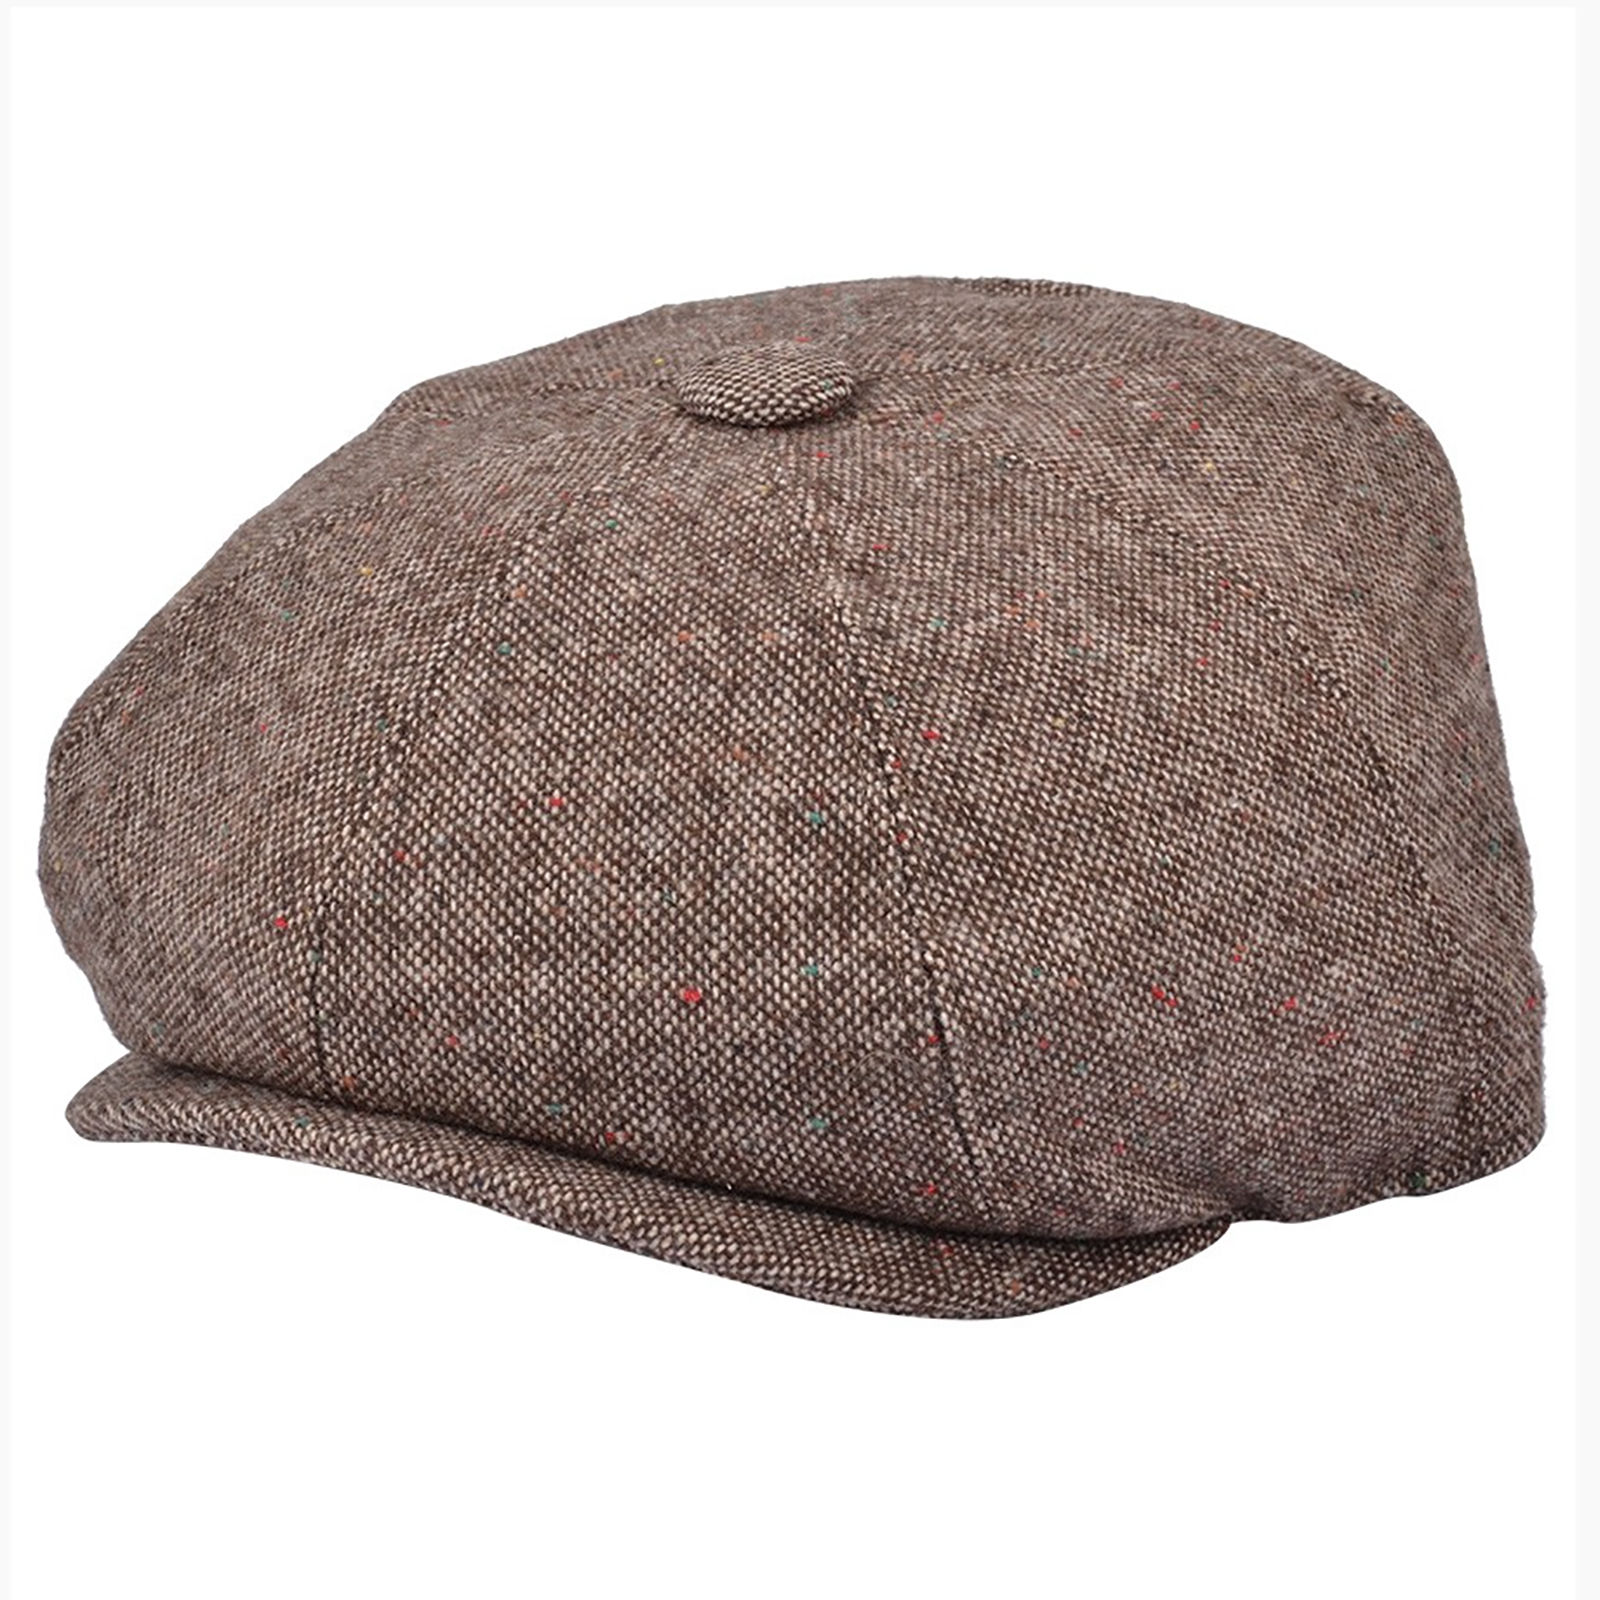 Details about G   H Salt   Pepper Brown Newsboy 8 Panel Peaky Blinders  Style Cap Hat 50a889410a0